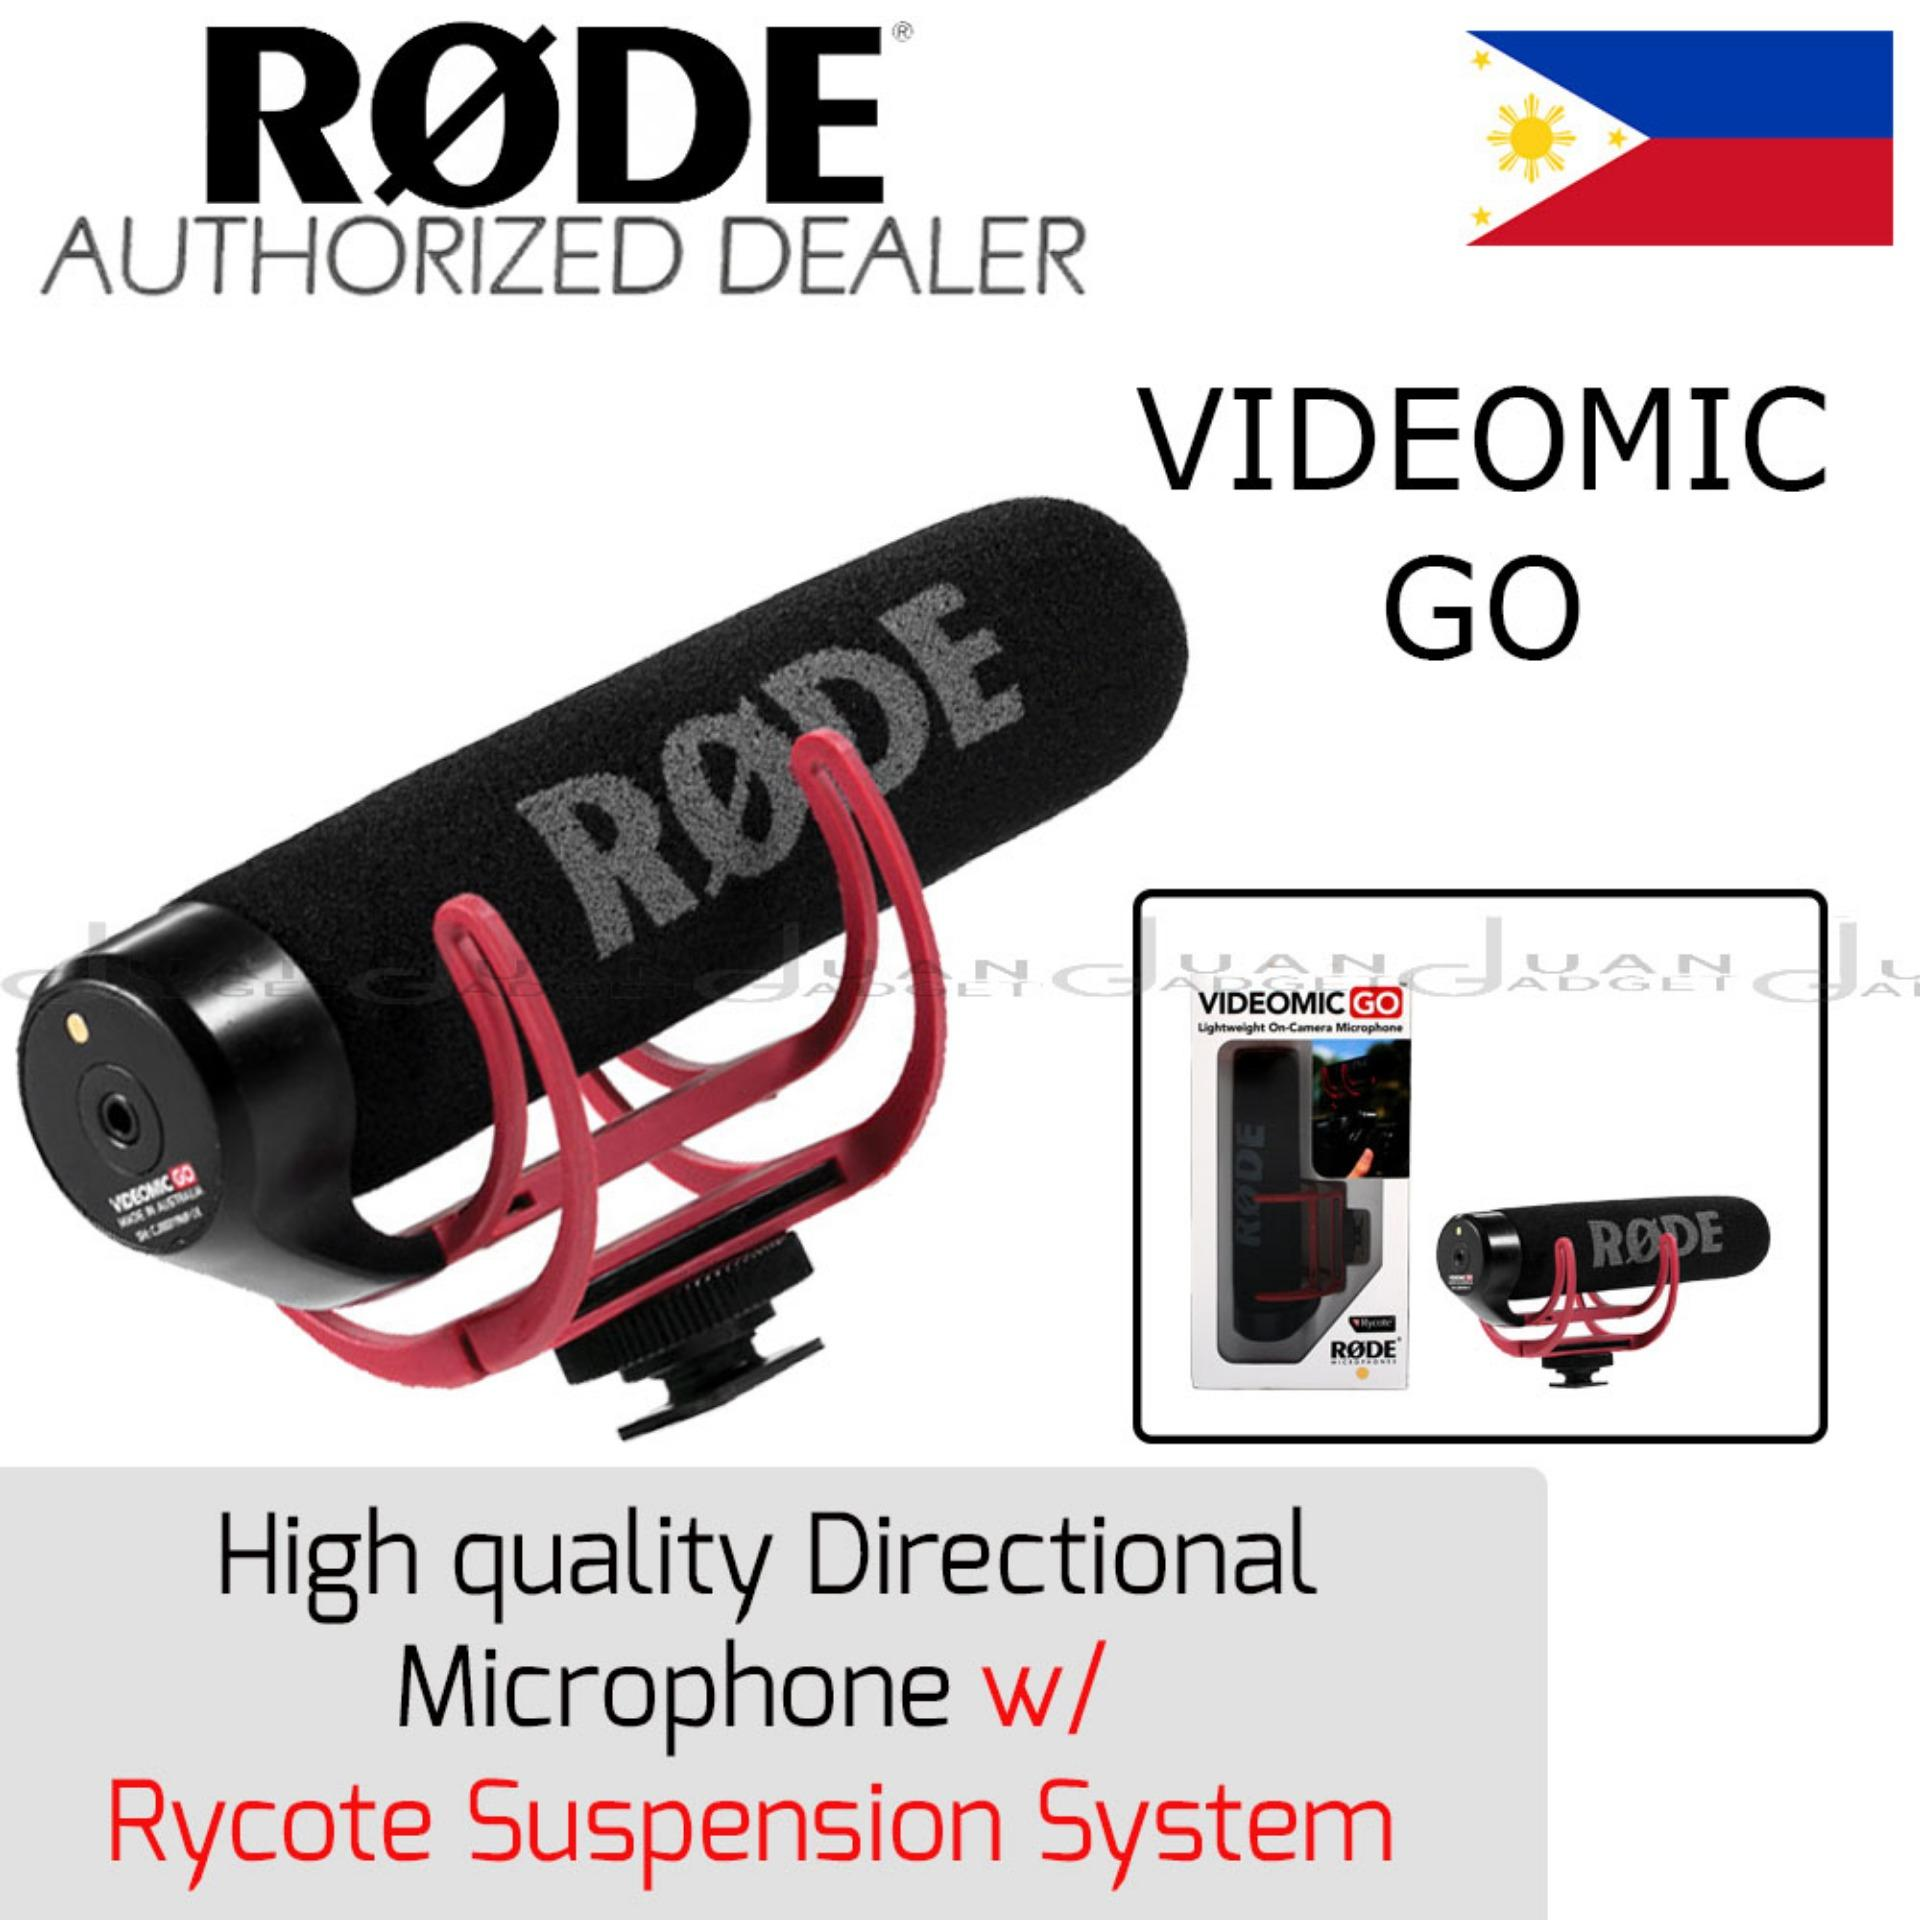 Rode Philippines Price List Microphone For Sale Lazada Videomic Me Go Lightweight On Camera